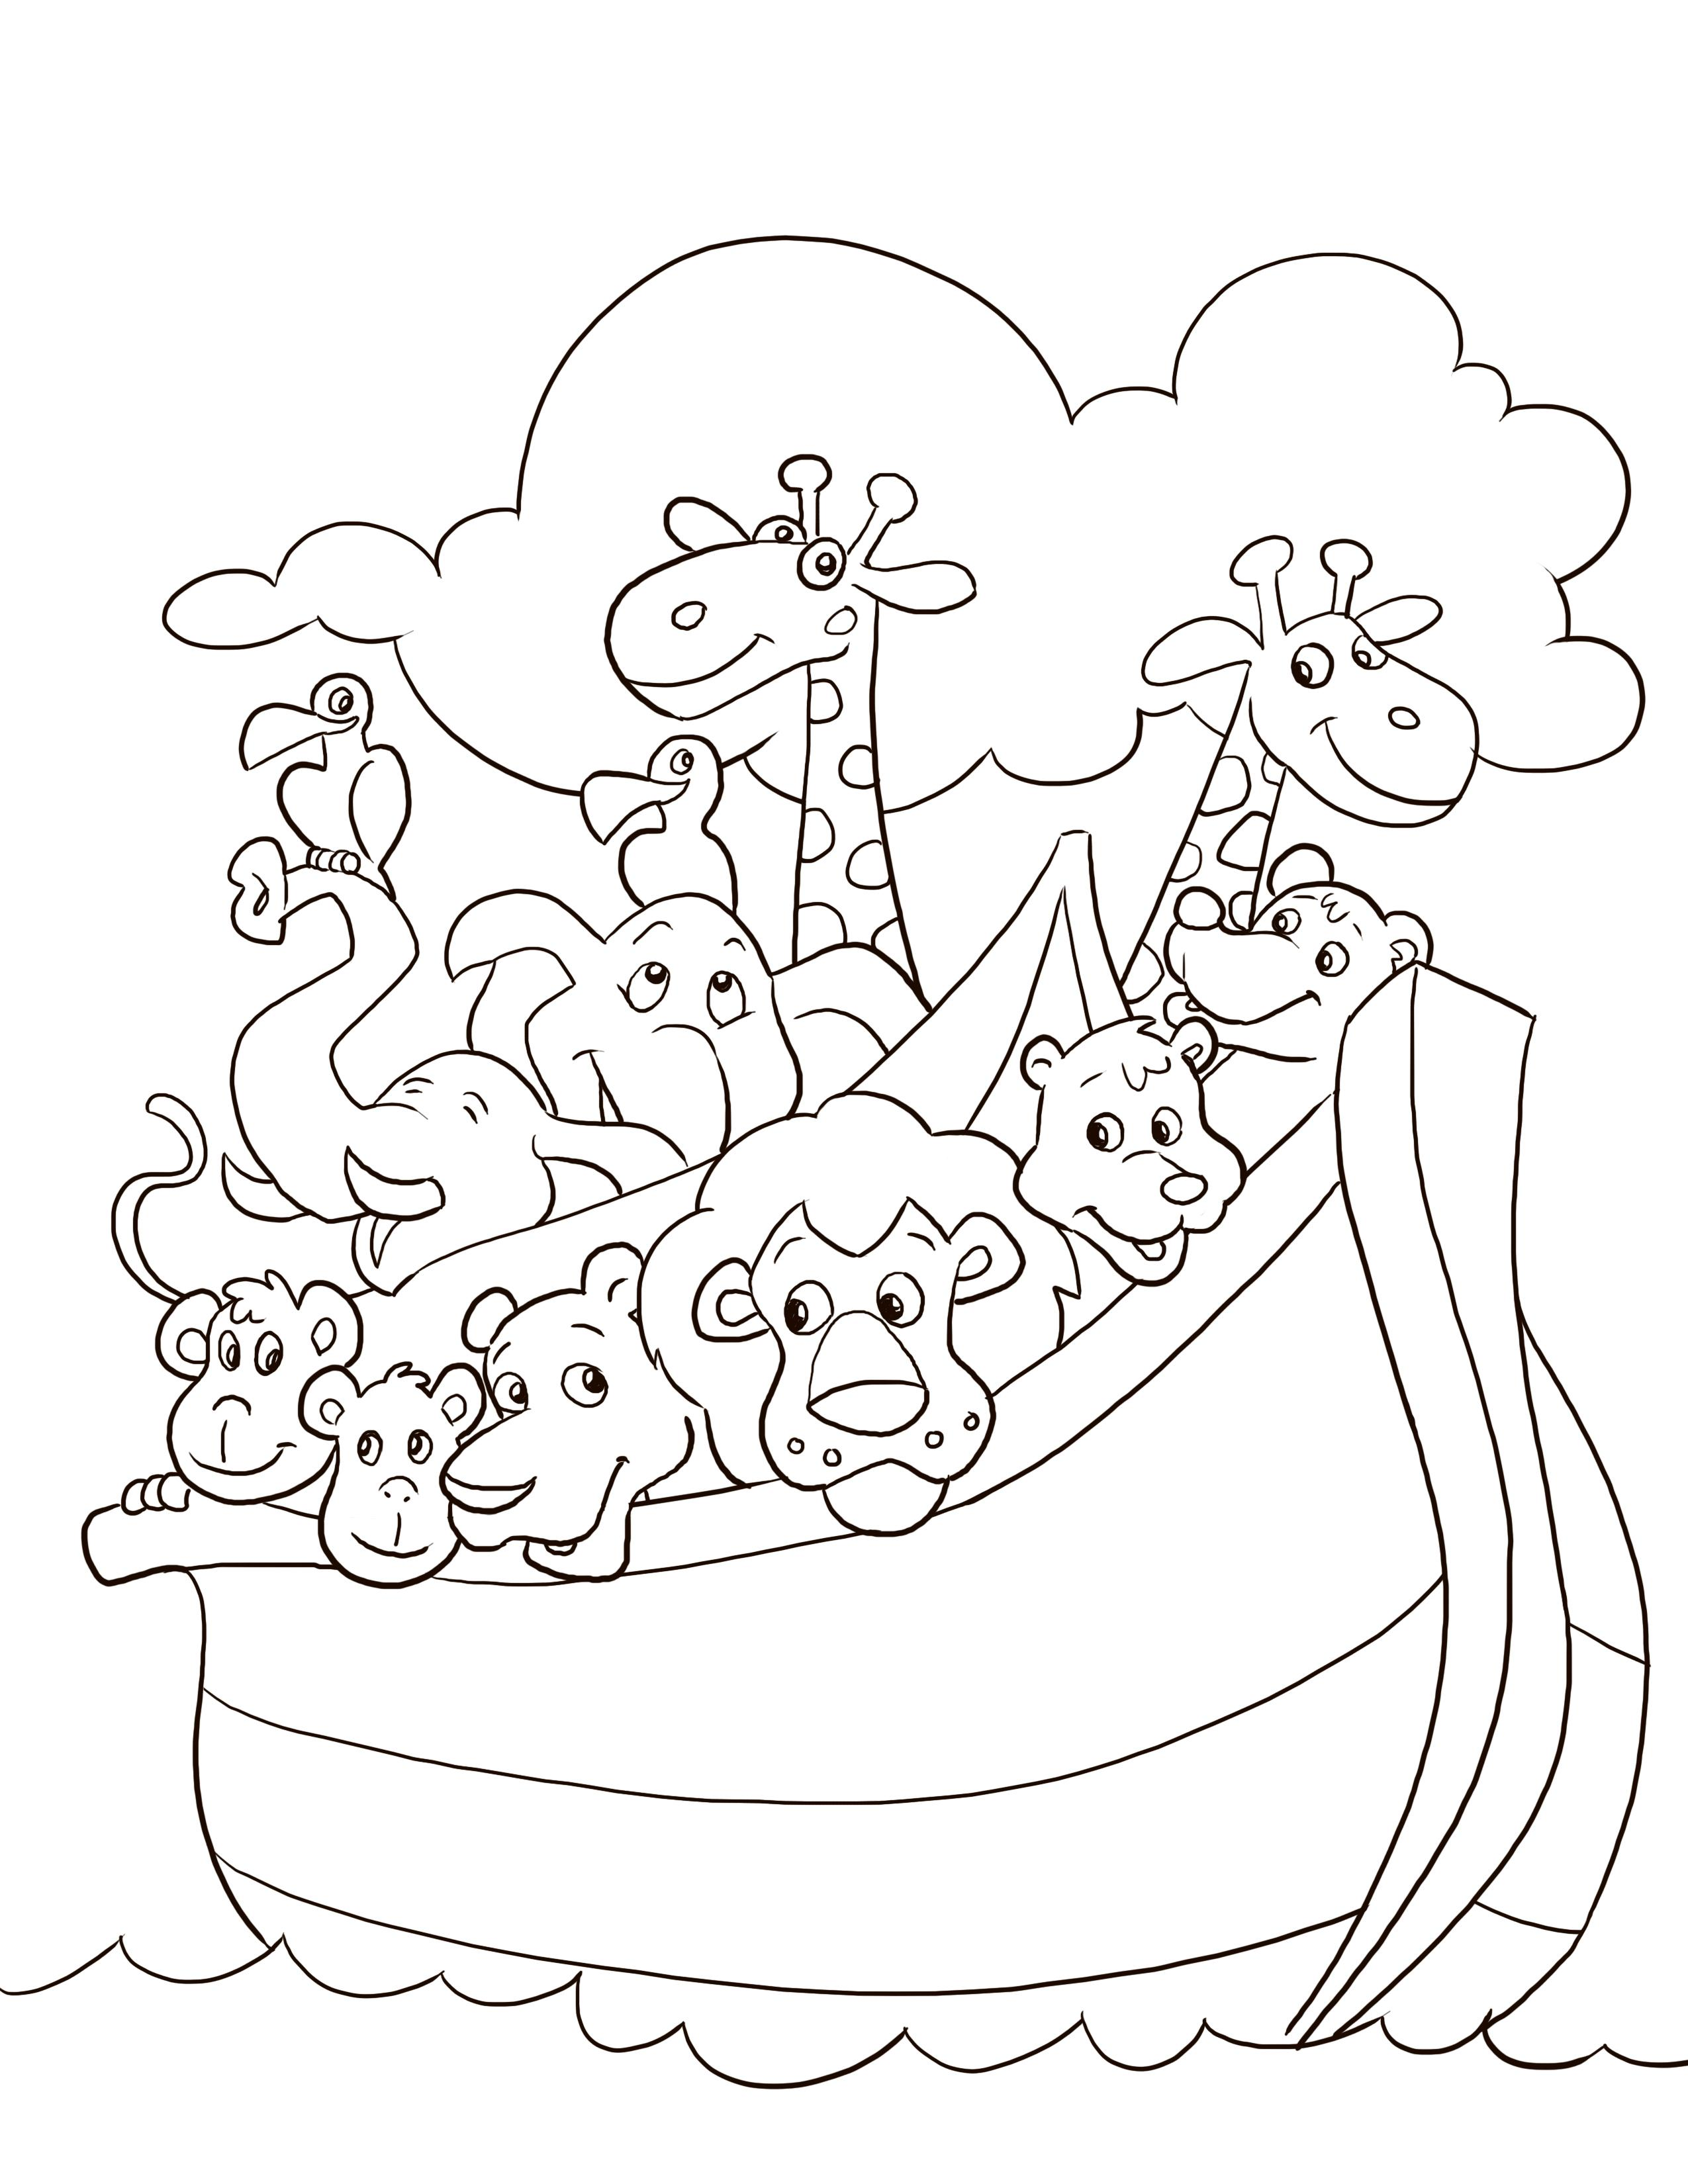 2550x3300 Simple Bible Coloring Pages For Toddlers